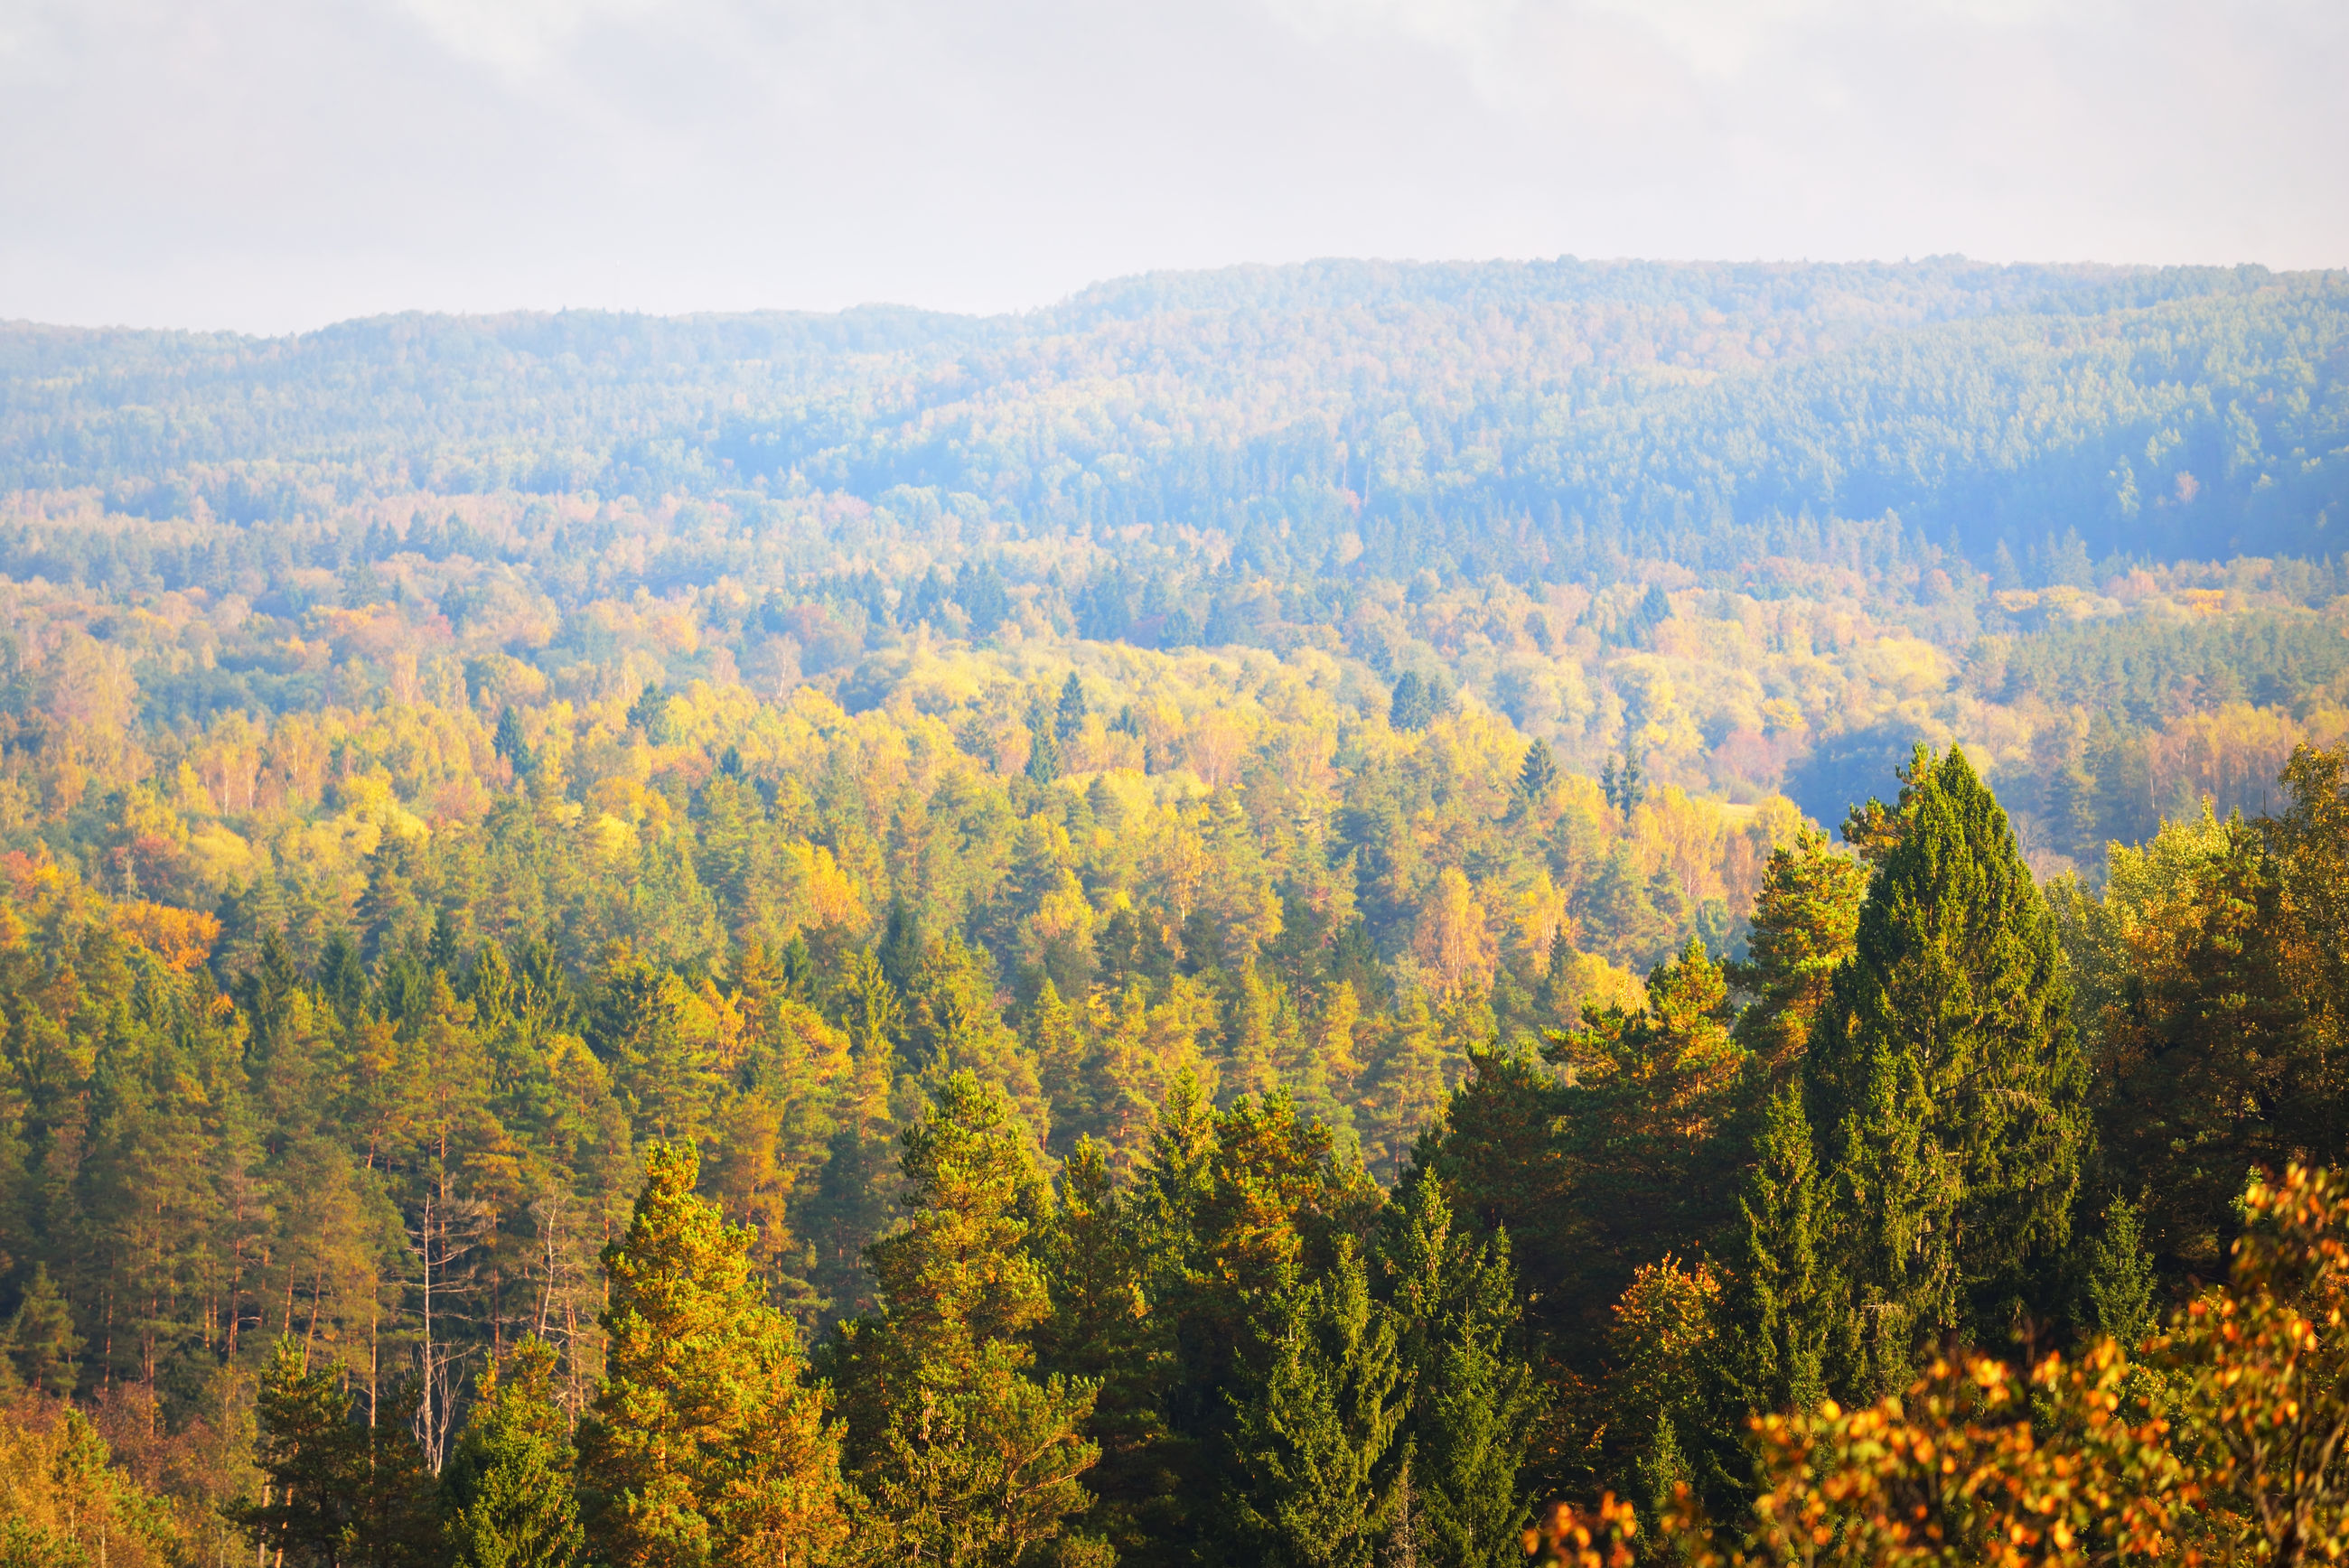 SCENIC VIEW OF TREES ON LANDSCAPE AGAINST SKY